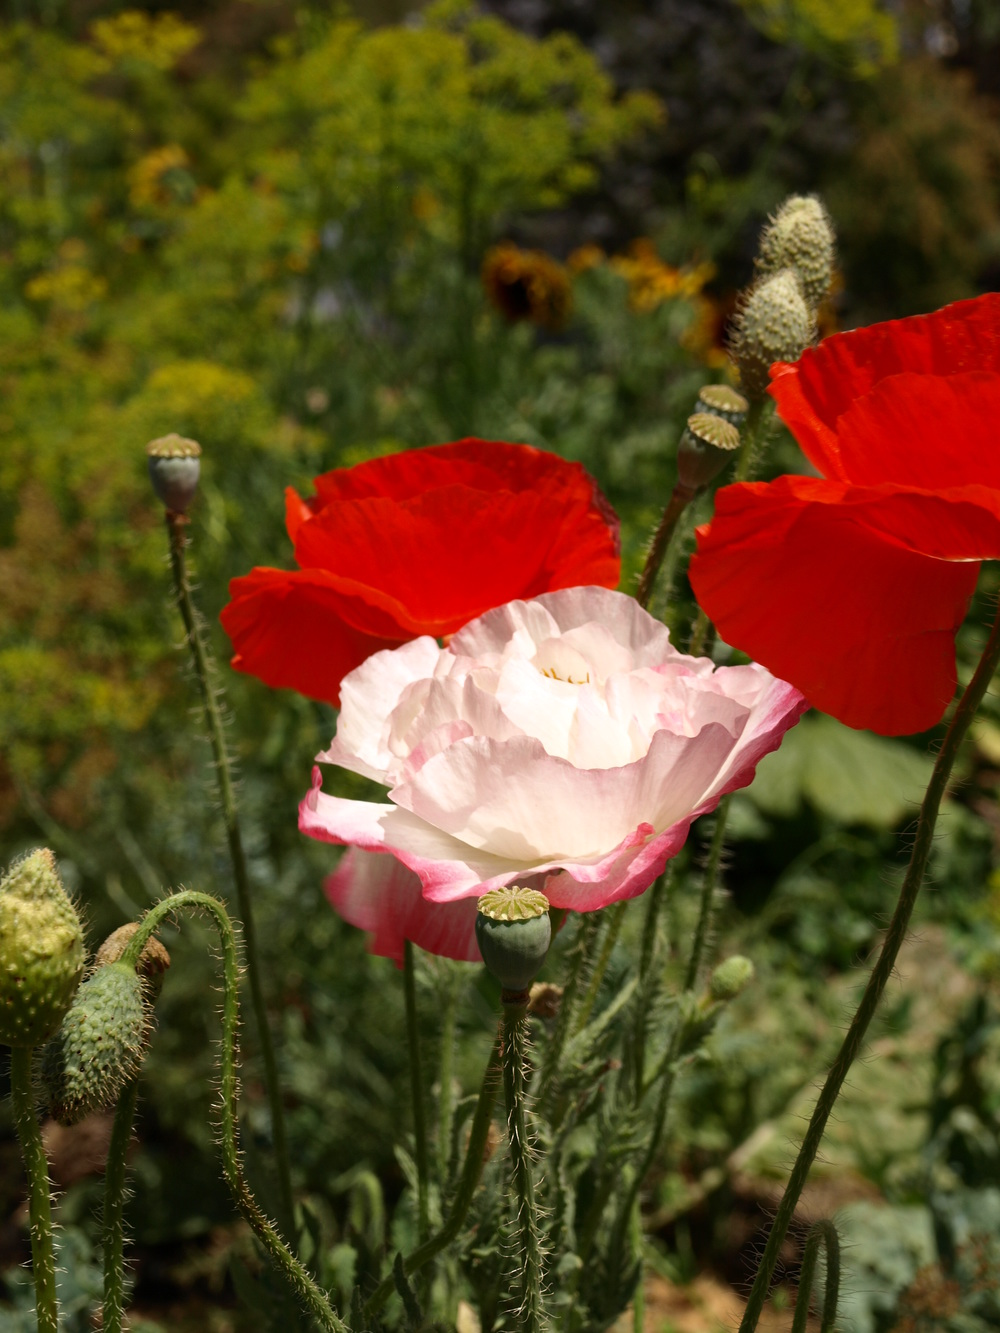 I'm loving all the flowers, like these poppies